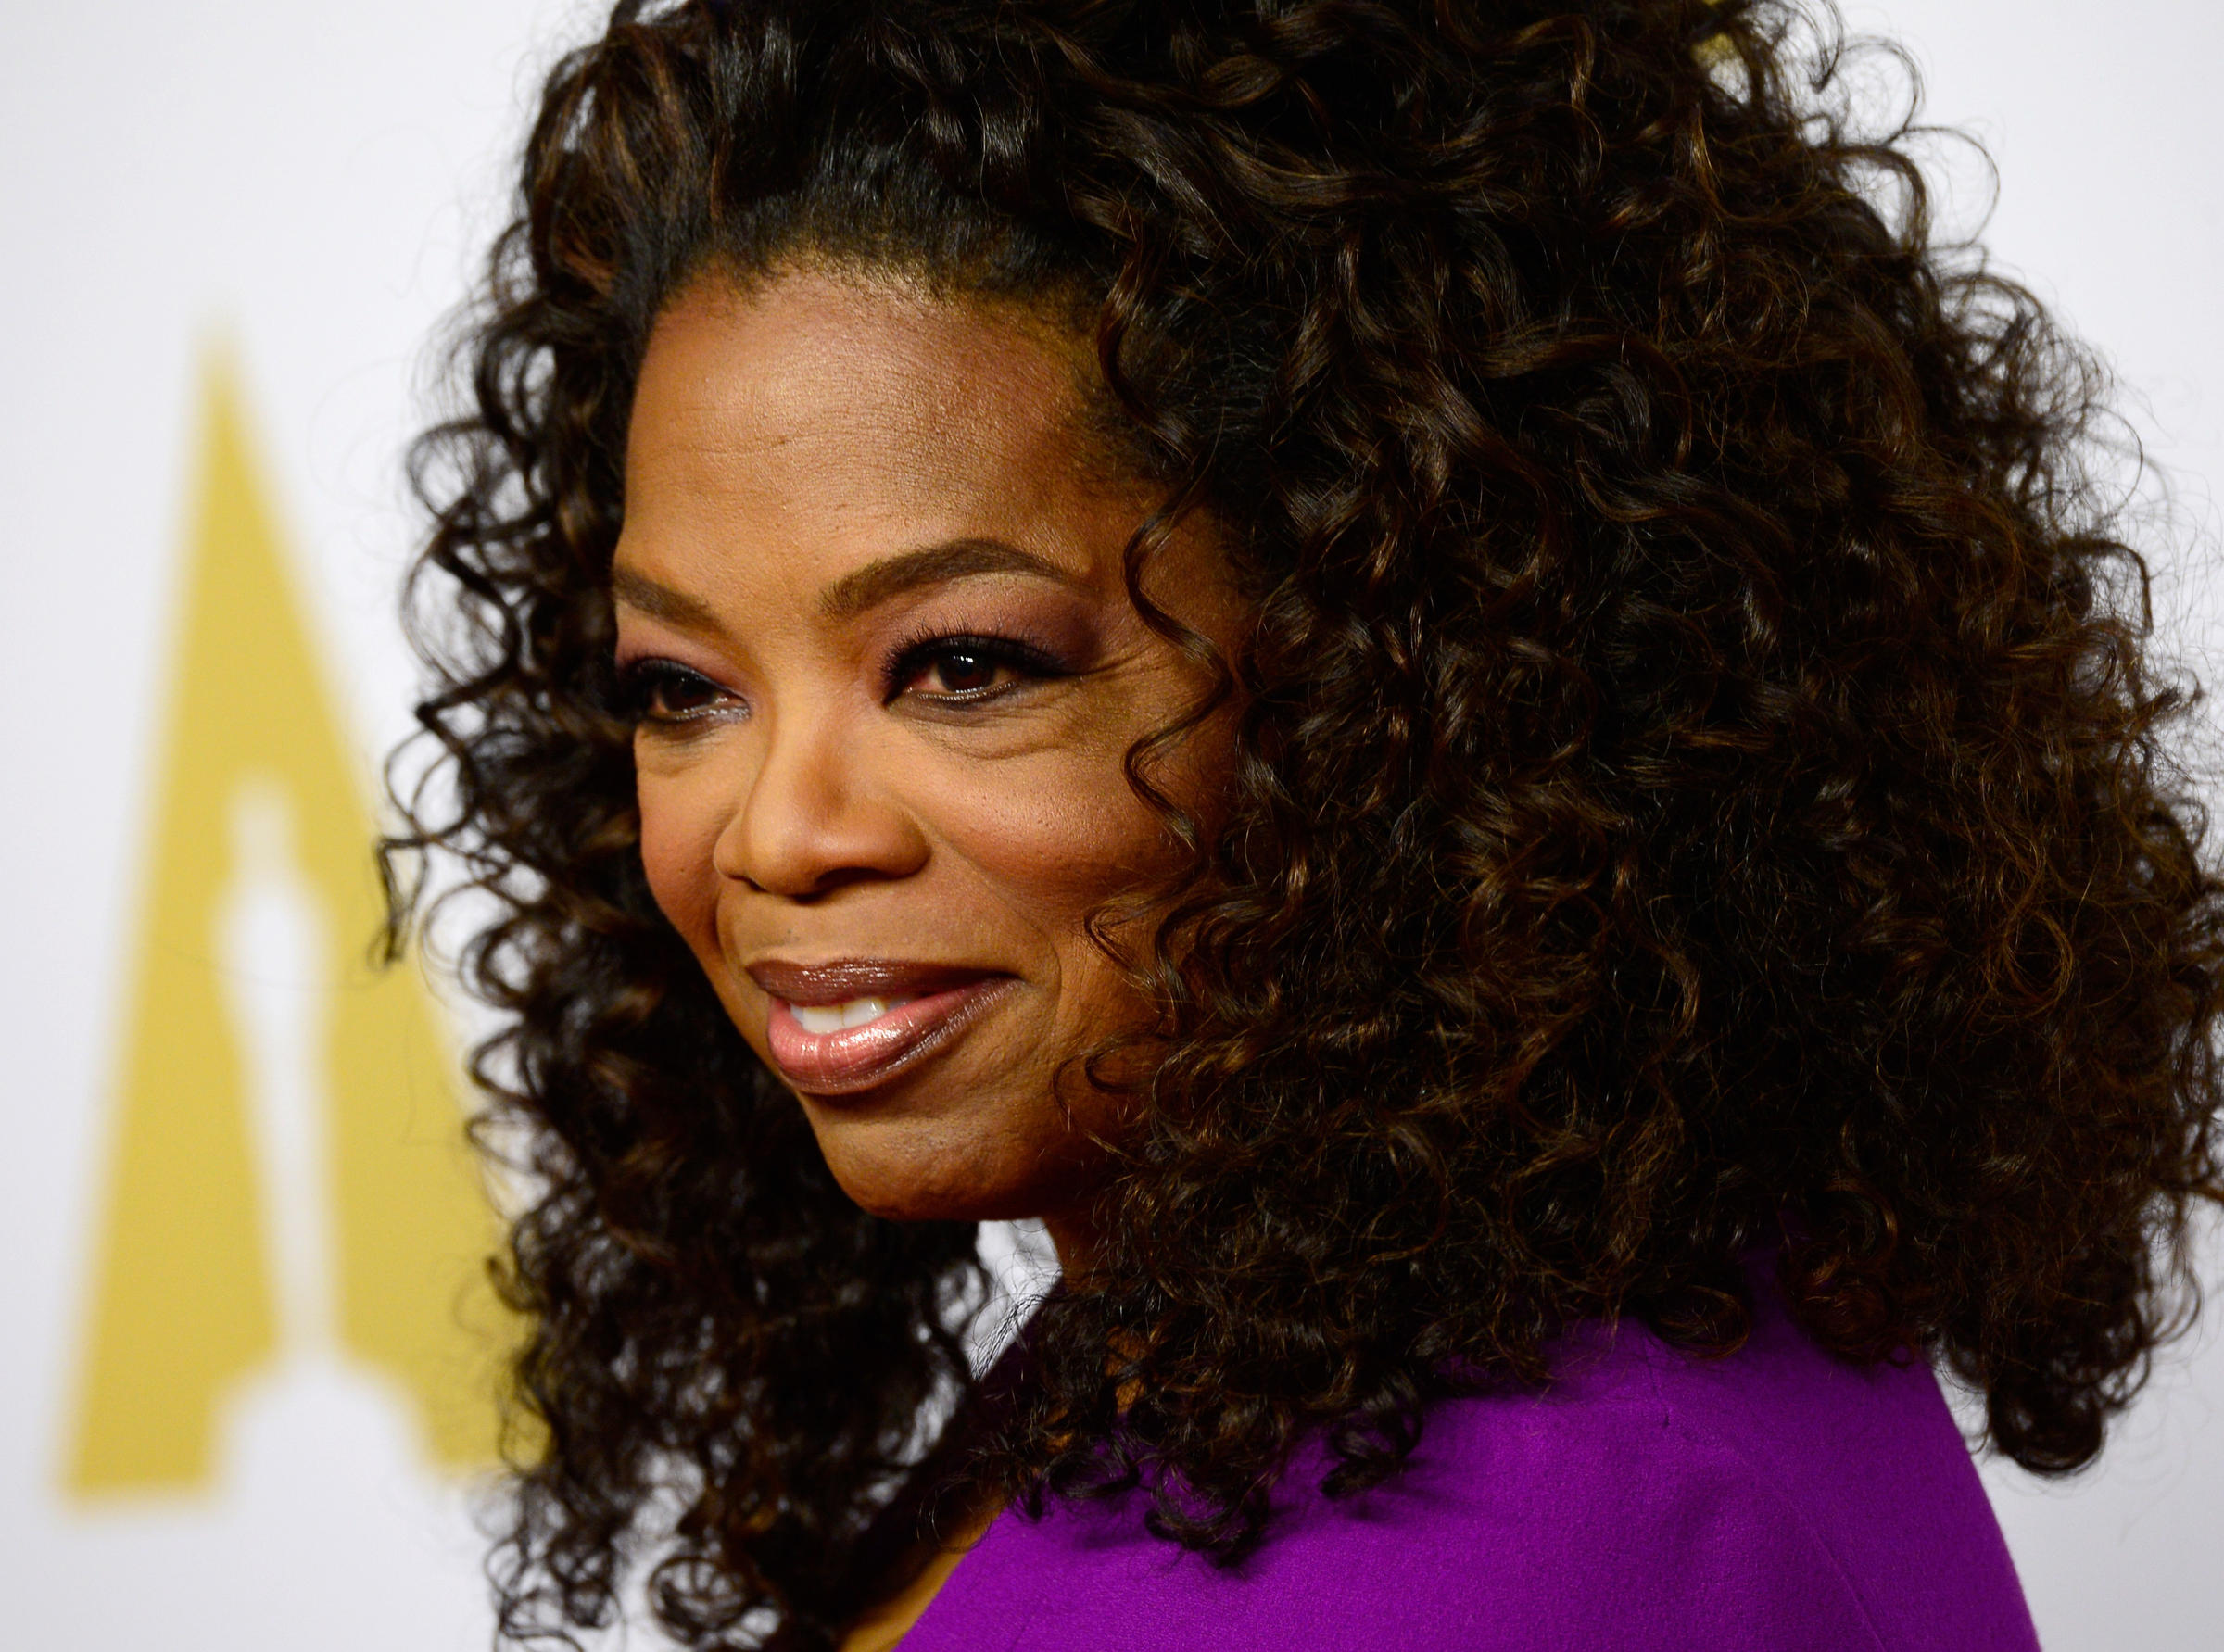 Essay Oprah  Me  Wuwm Produceractress Oprah Winfrey Attends The Th Annual Academy Awards  Nominee Luncheon At The Beverly Hilton Hotel On February   In Beverly  Hills  Business Essay Format also Pay Someone To Take Online Class  Abortion Essay Thesis